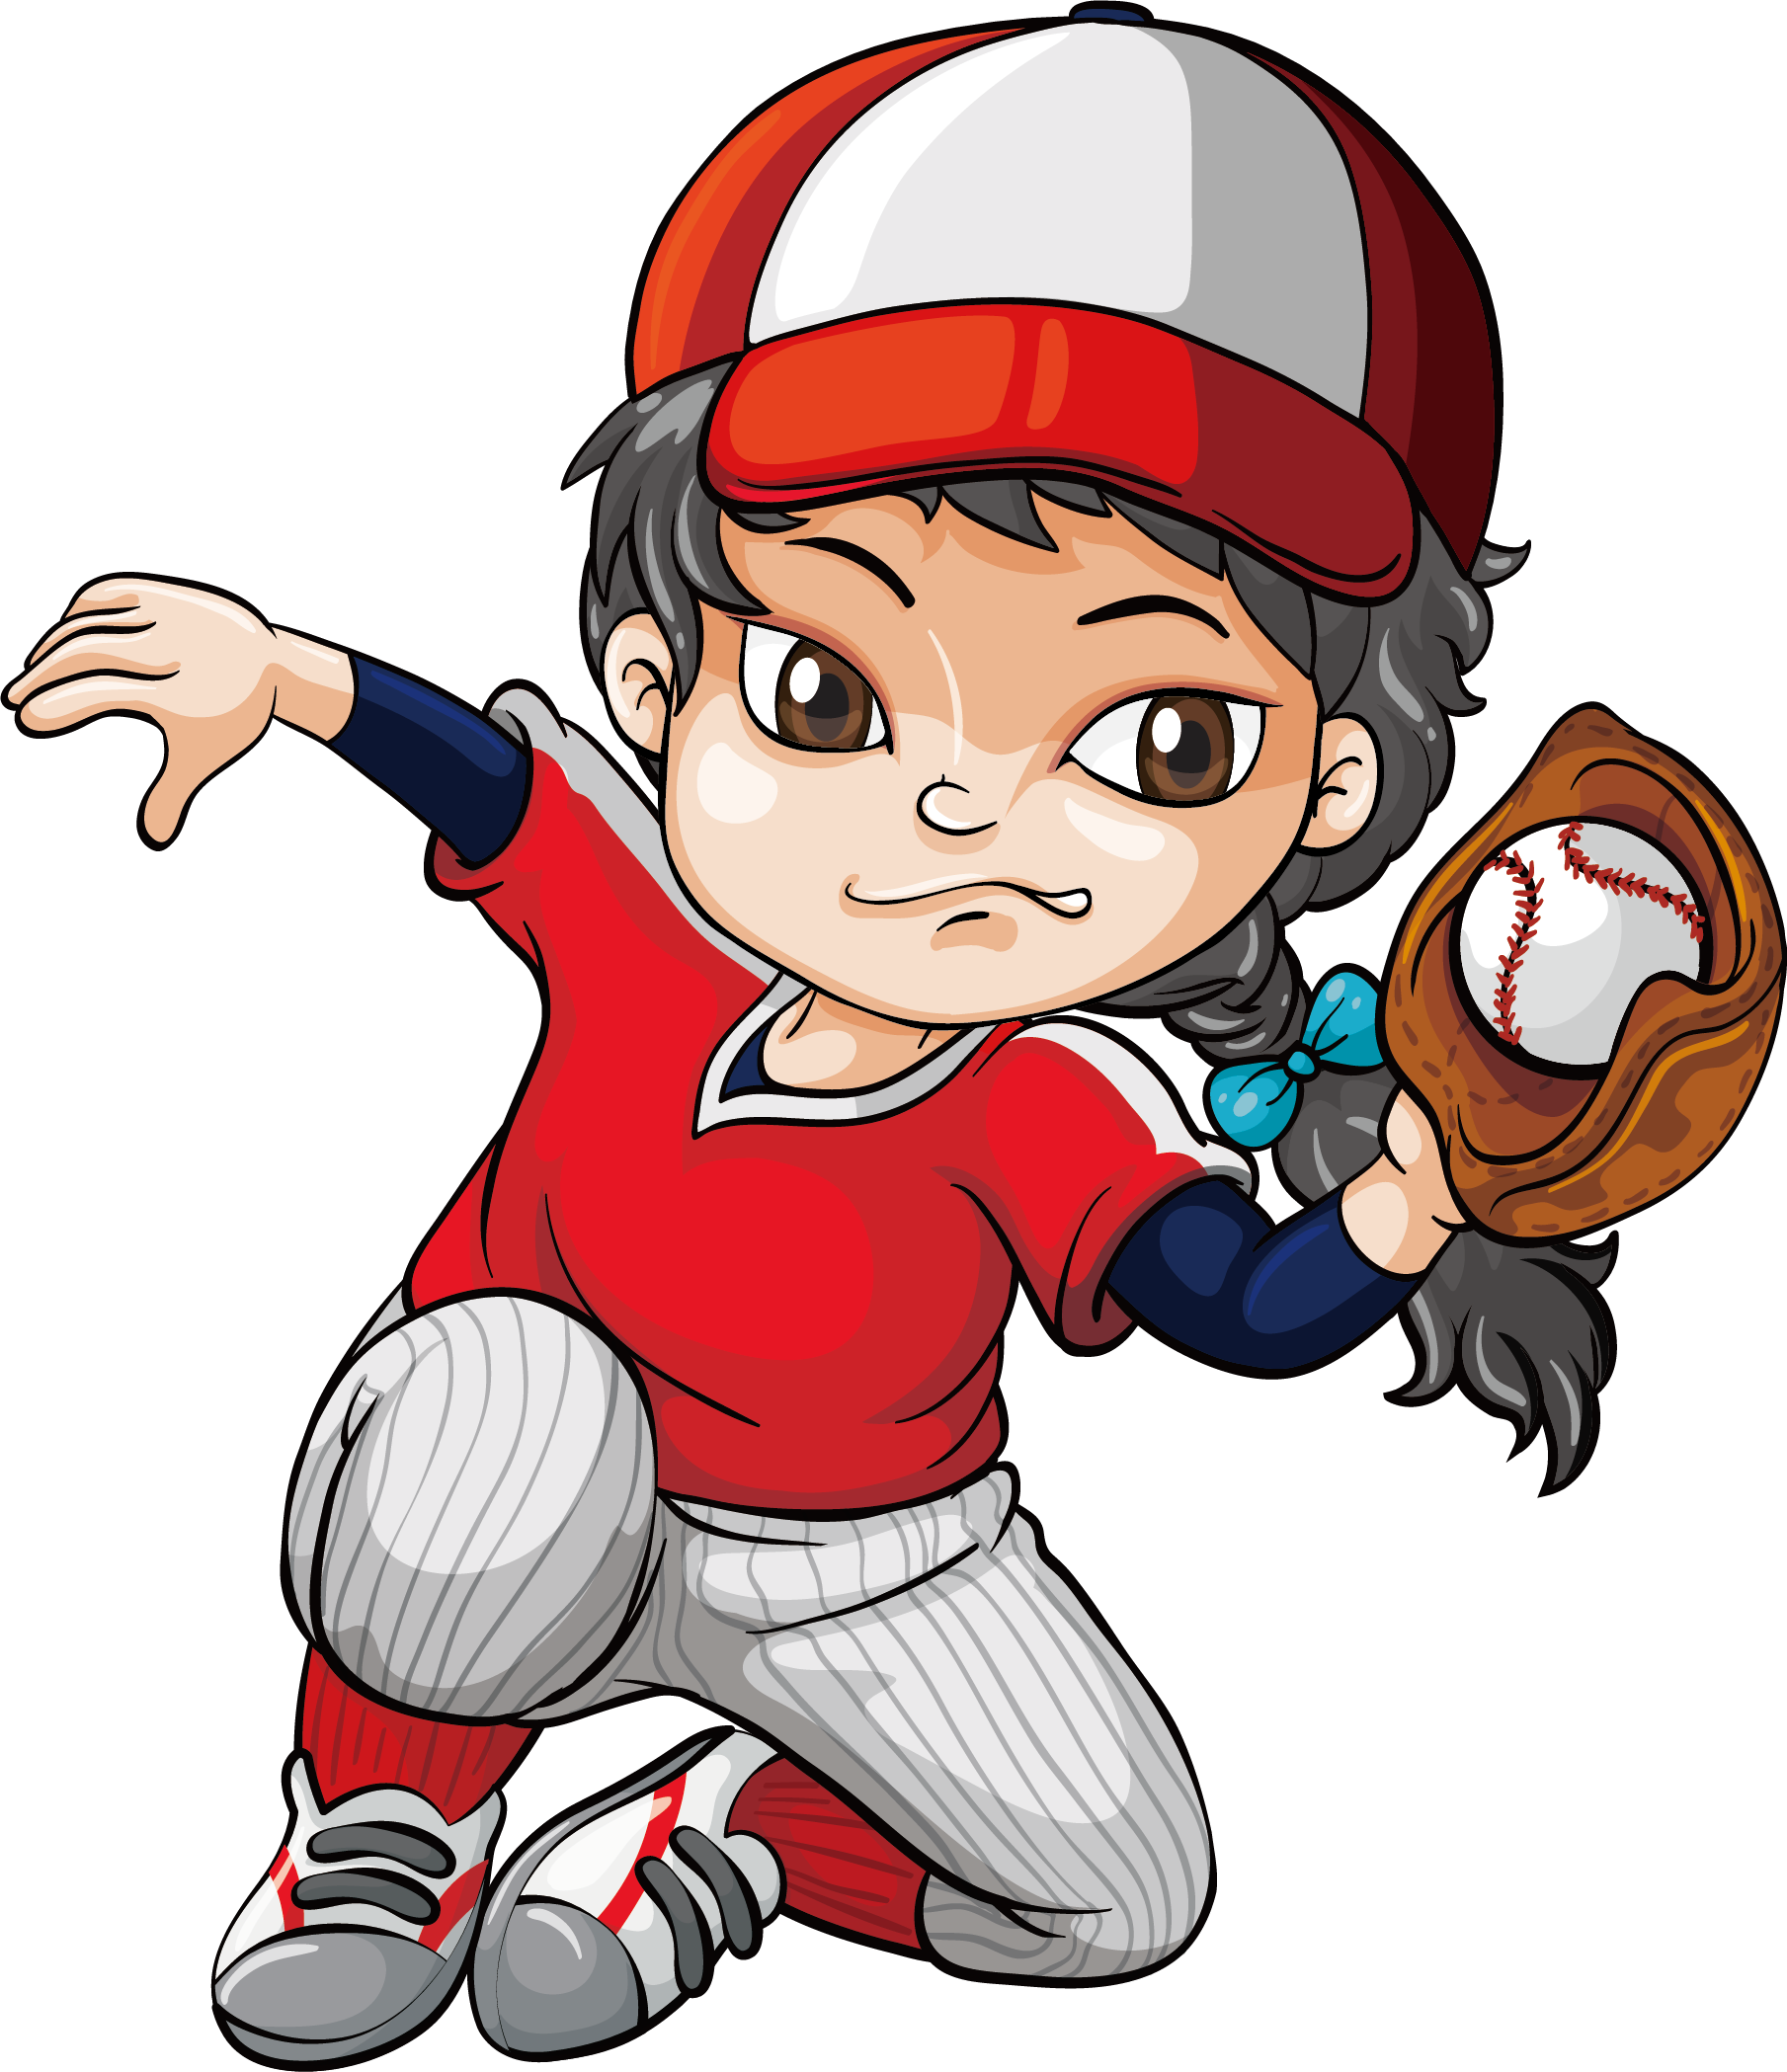 Kids Baseball Clipart 2 Kids Baseball Baseball Banner Cartoon People